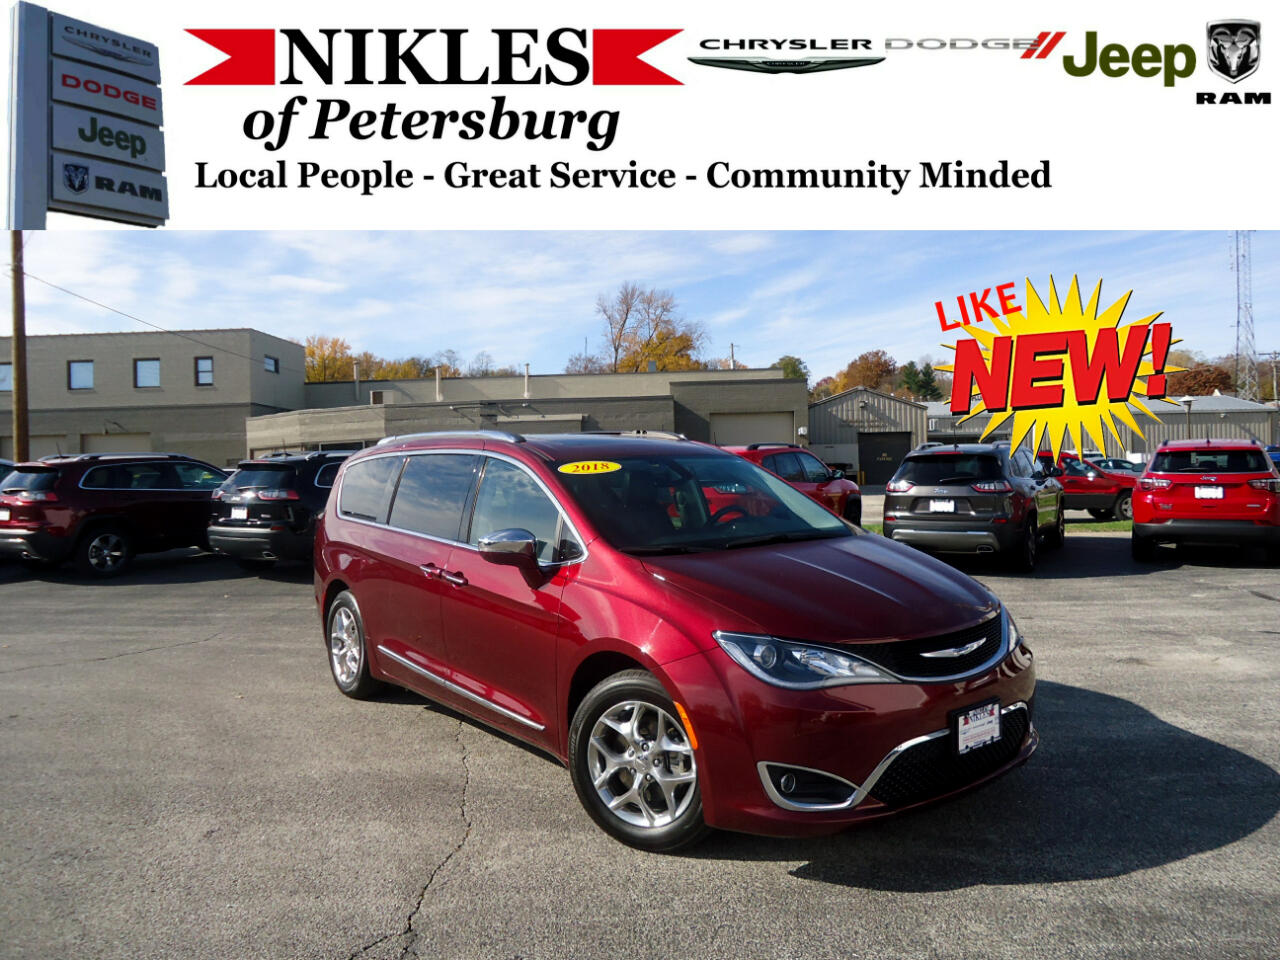 2018 Chrysler Pacifica 4dr Wgn Limited FWD